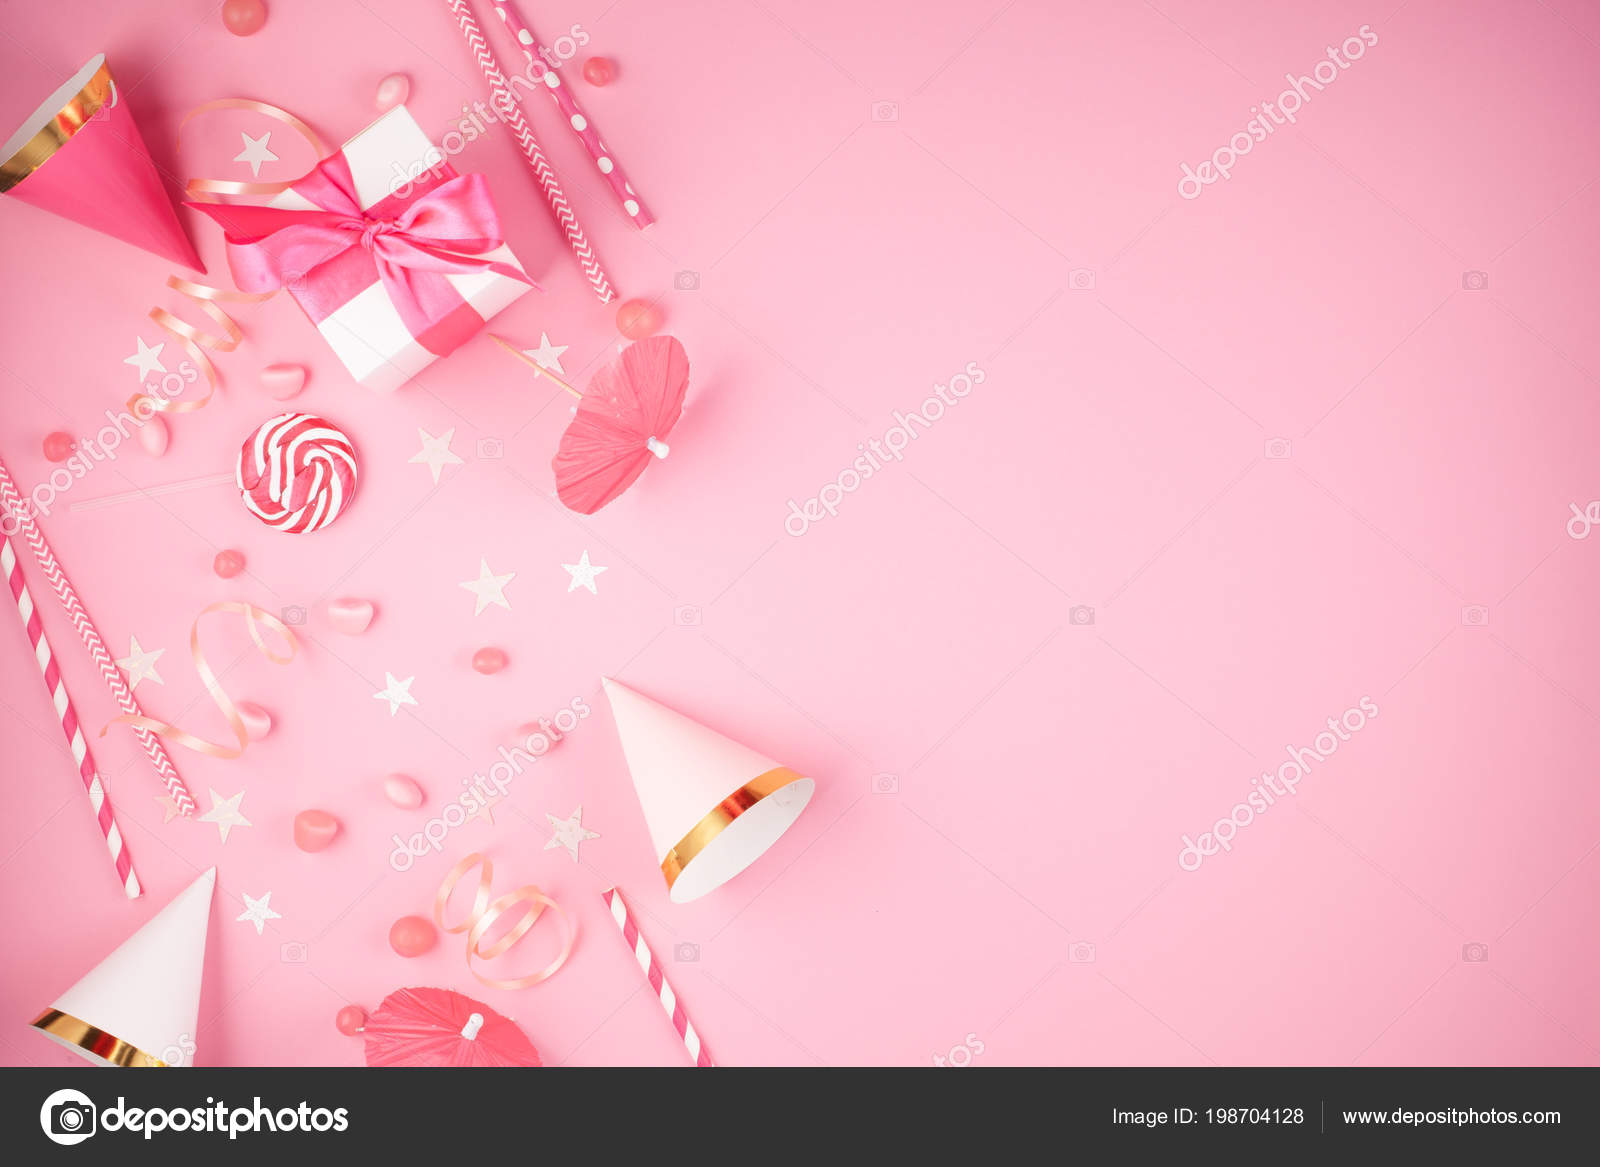 Girls Party Accessories Pink Background Invitation Birthday Bachelorette Baby Stock Photo